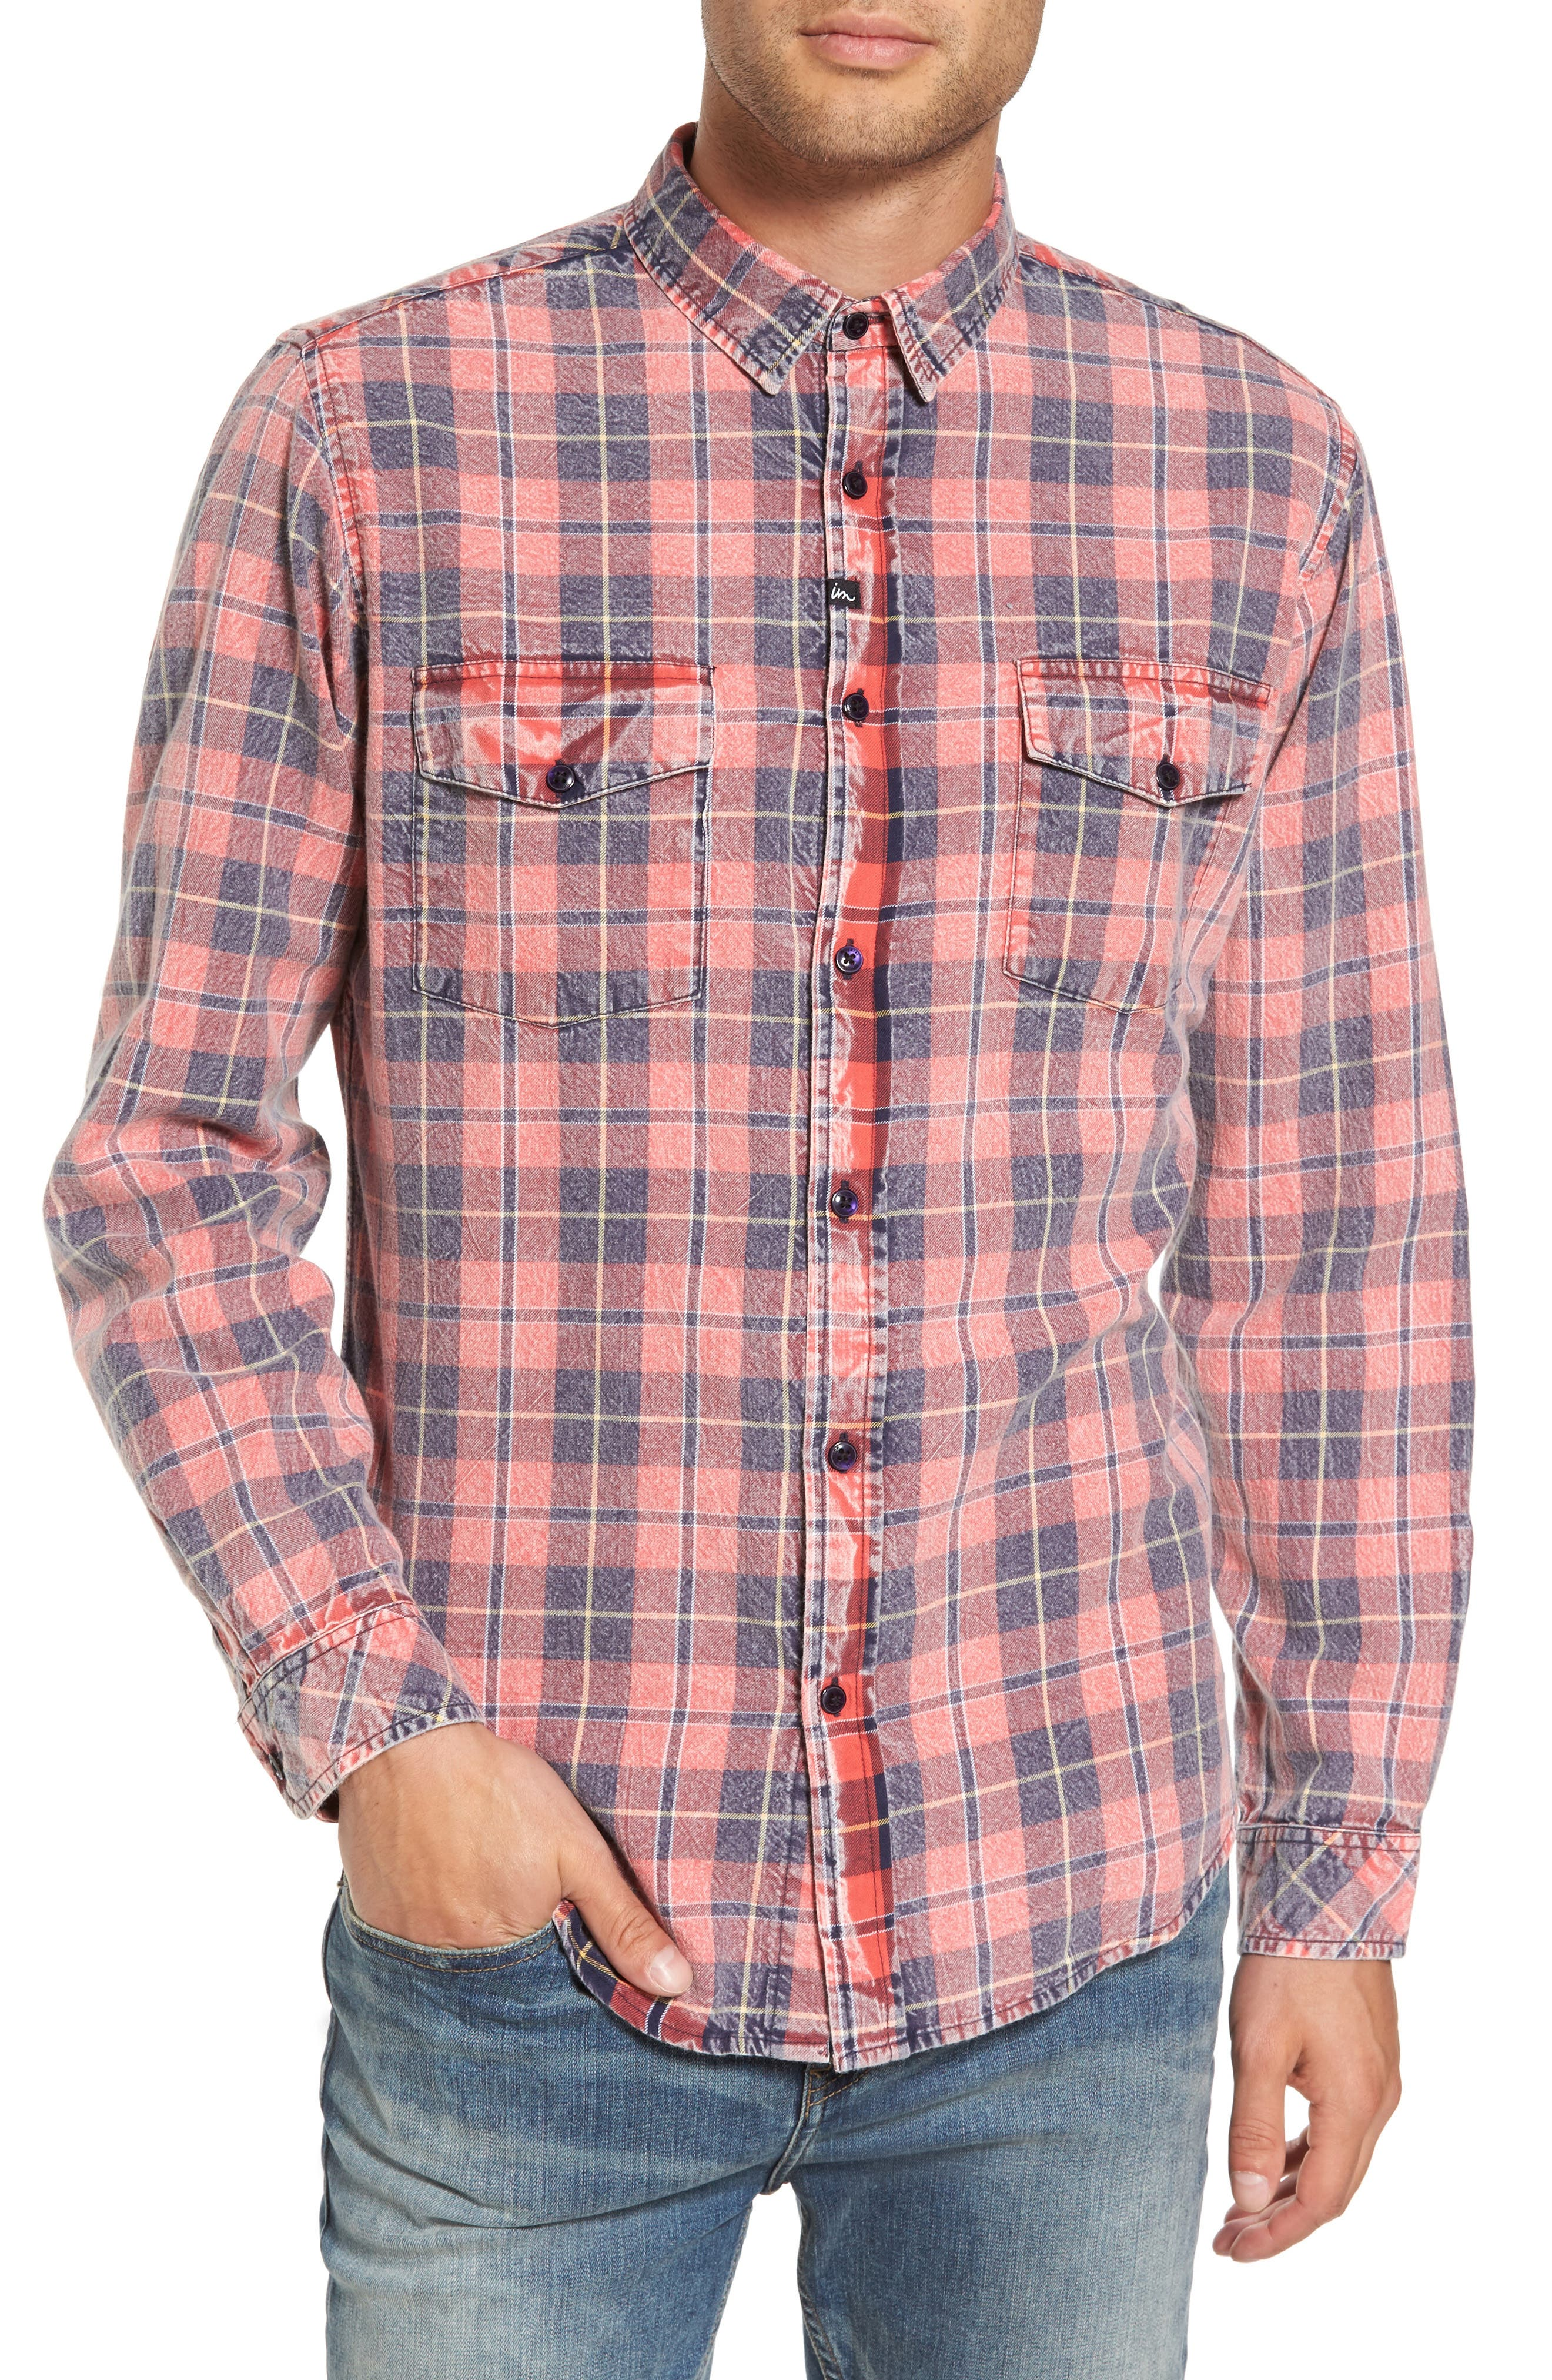 Greenwich Flannel Shirt,                             Main thumbnail 1, color,                             Faded Red